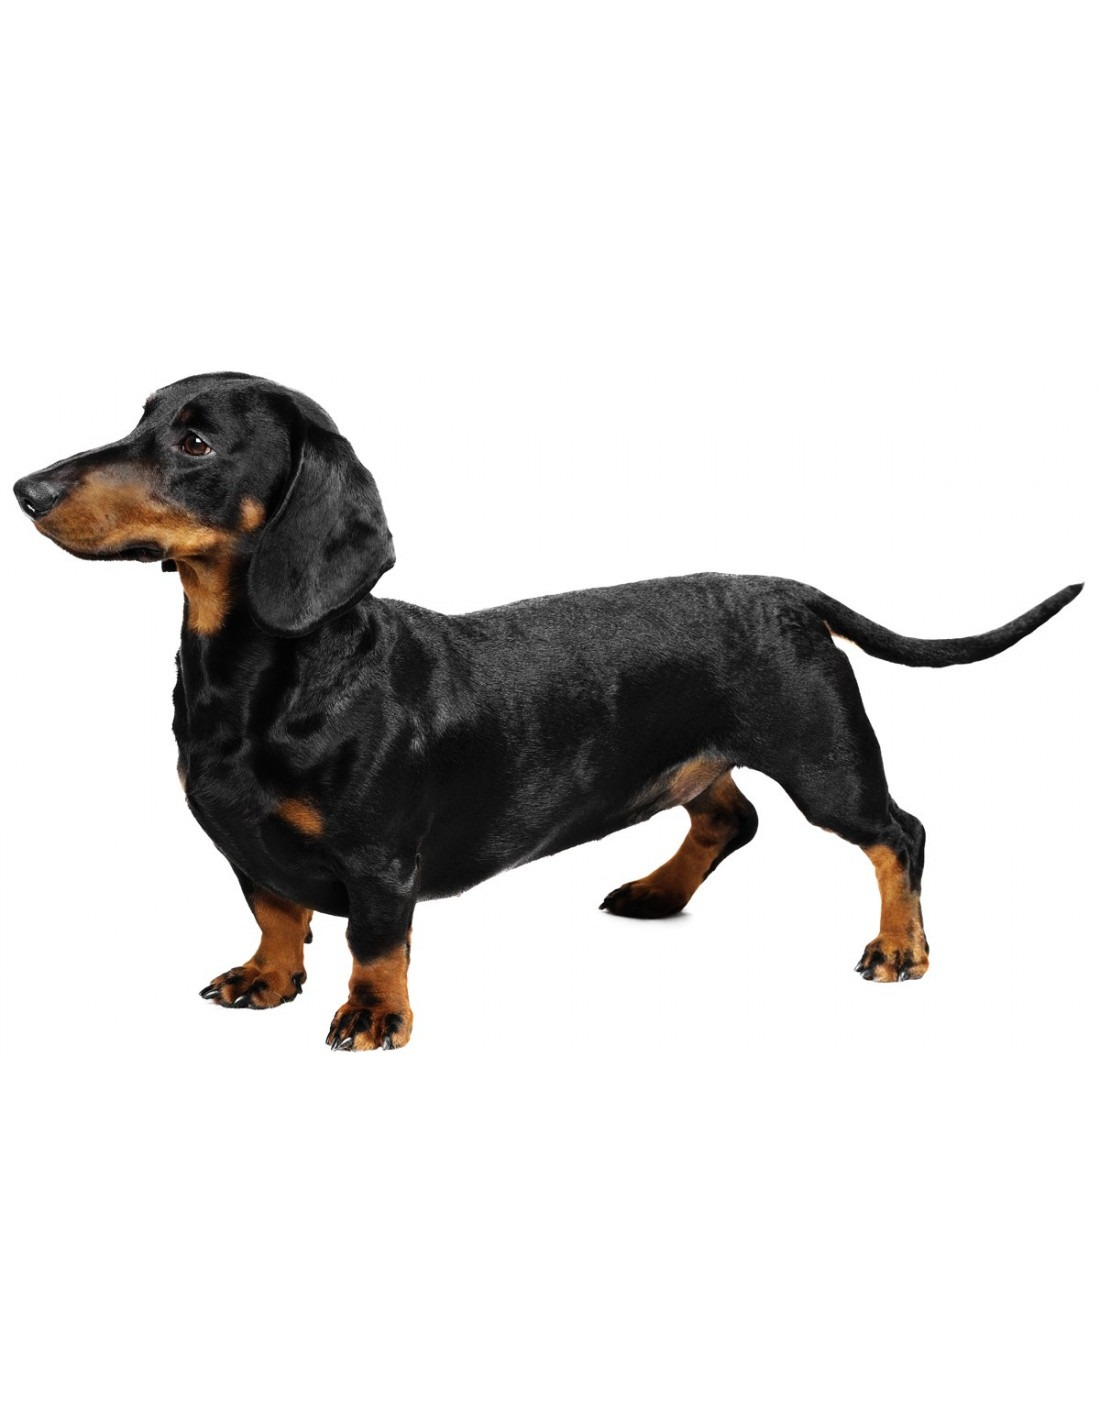 Dachshund Puppies For Sale Gender Male